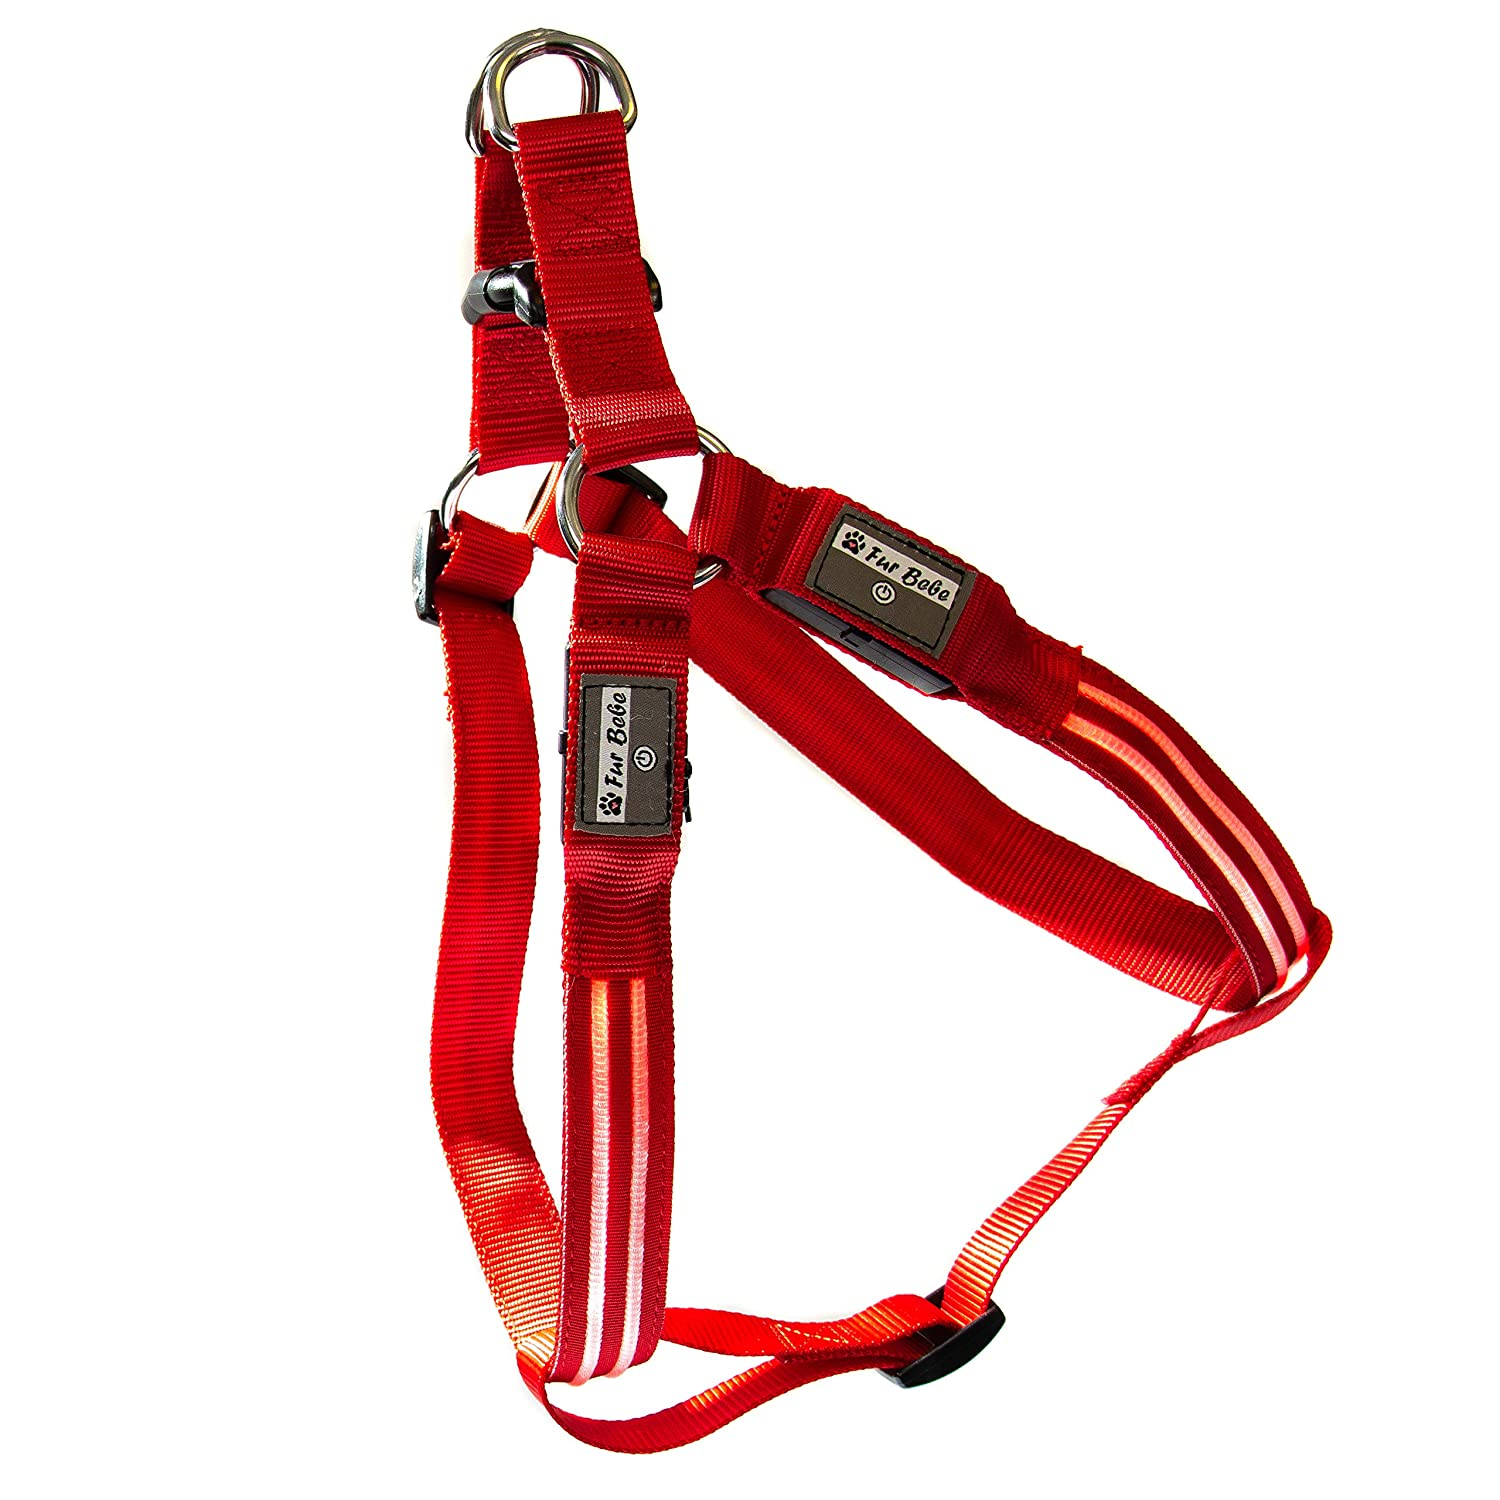 Red XLarge (60-80 cm   24-32 in) Red XLarge (60-80 cm   24-32 in) Fur Bebe  IPX7 Waterproof USB Rechargeable RXL LED Harness, Night Safety, Super Bright, Premium 3rd Gen Optical, Glow Flash Blink Mode, Dog Pet Harness (XLarge, Red)